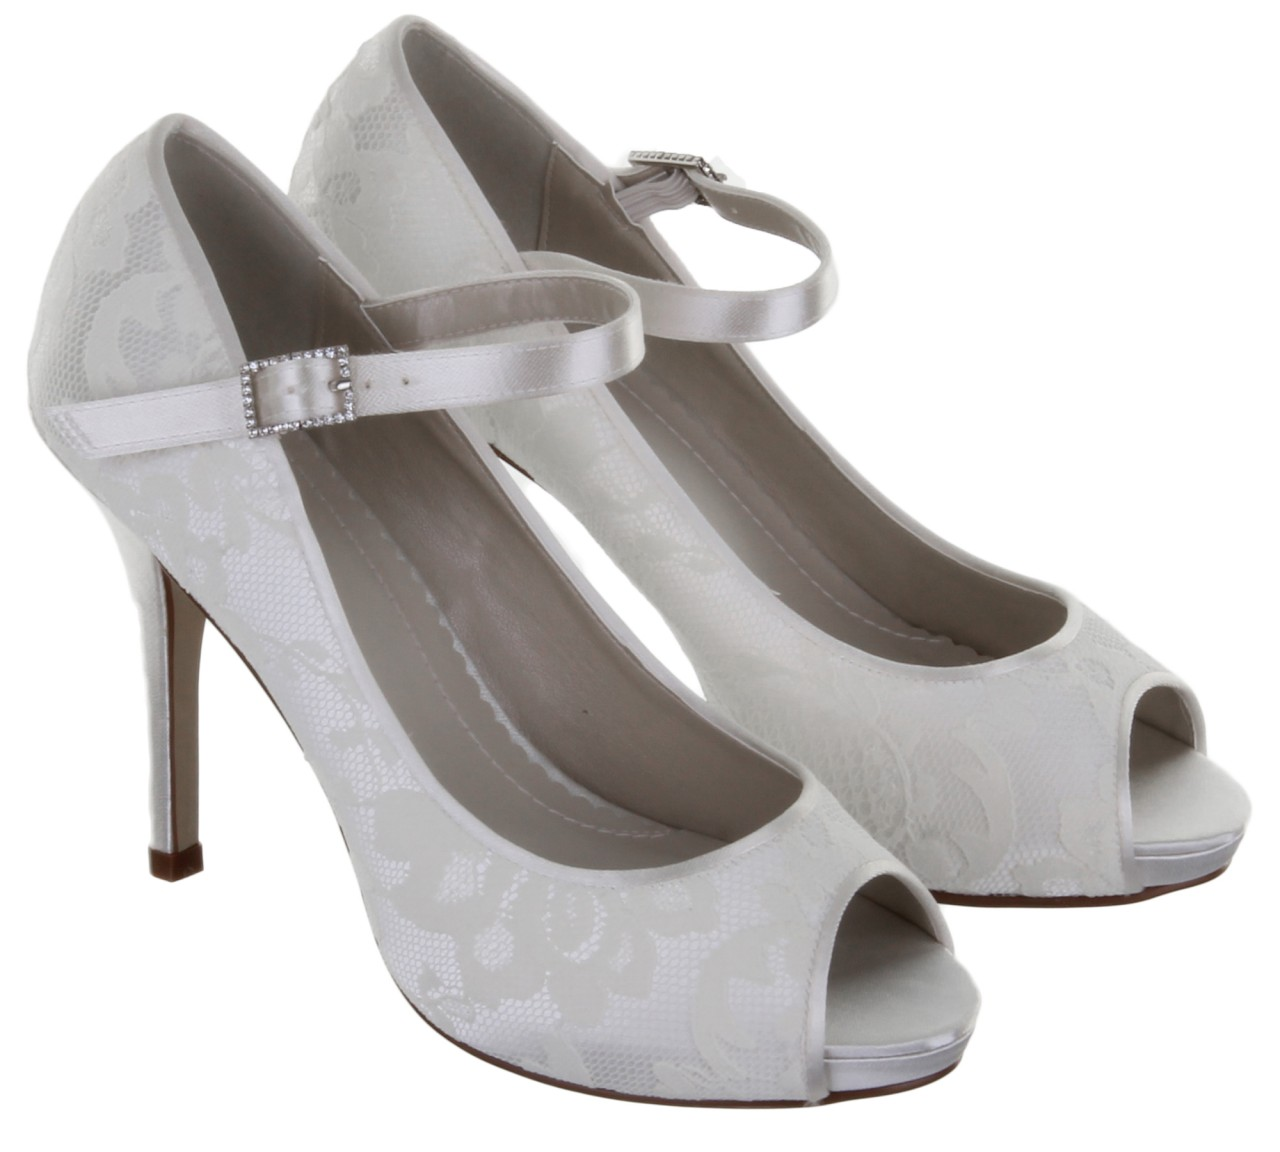 Wedding Nina Wedding Shoes head over heels wedding shoe trends pearls and lace trends